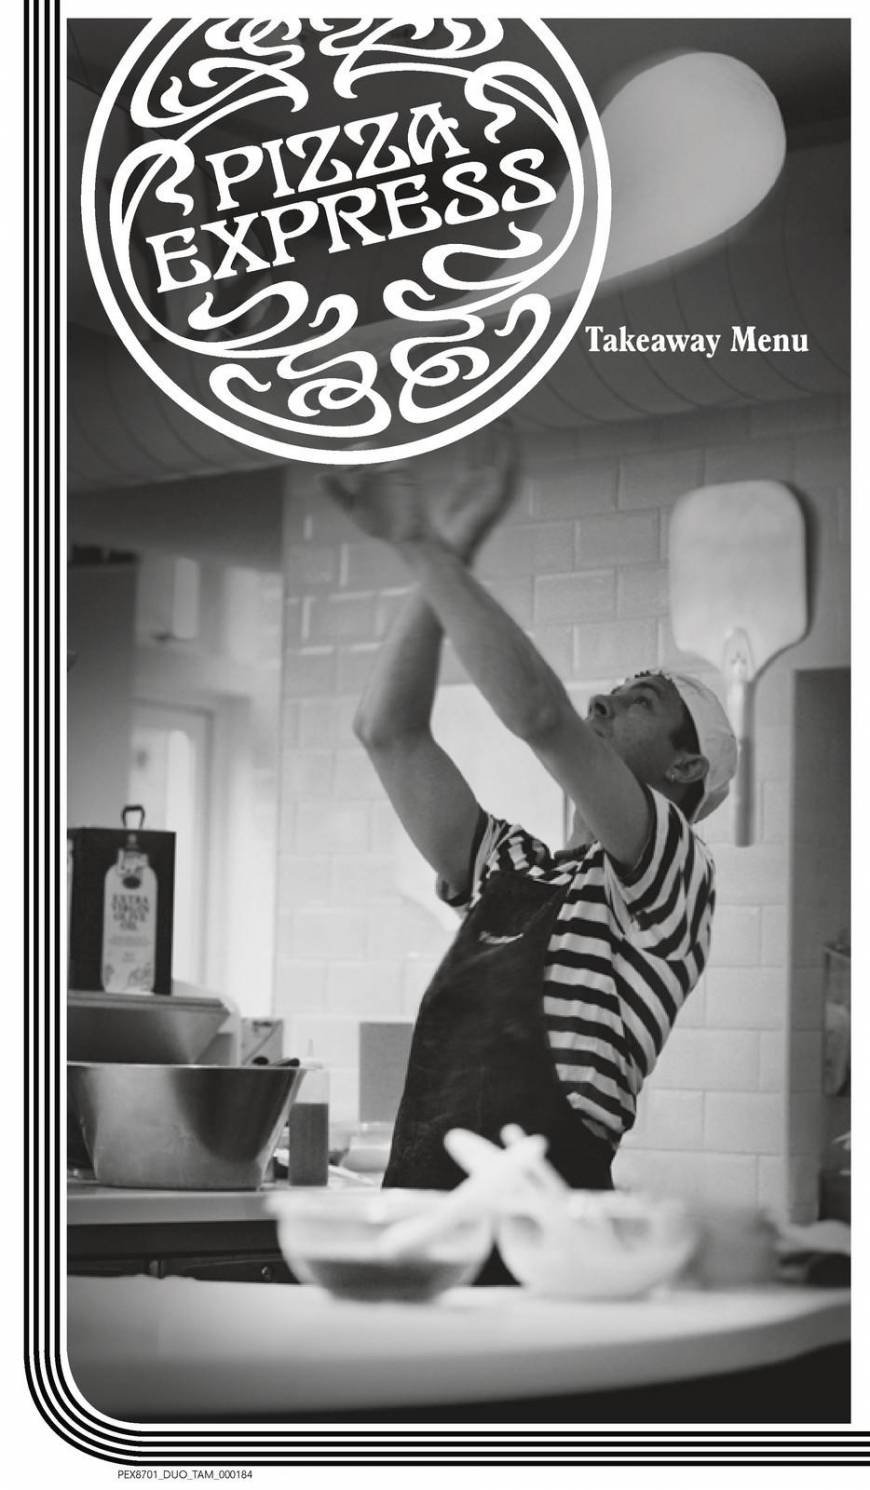 4 Of 4 Price Lists Menus Pizza Express Banstead Pizza